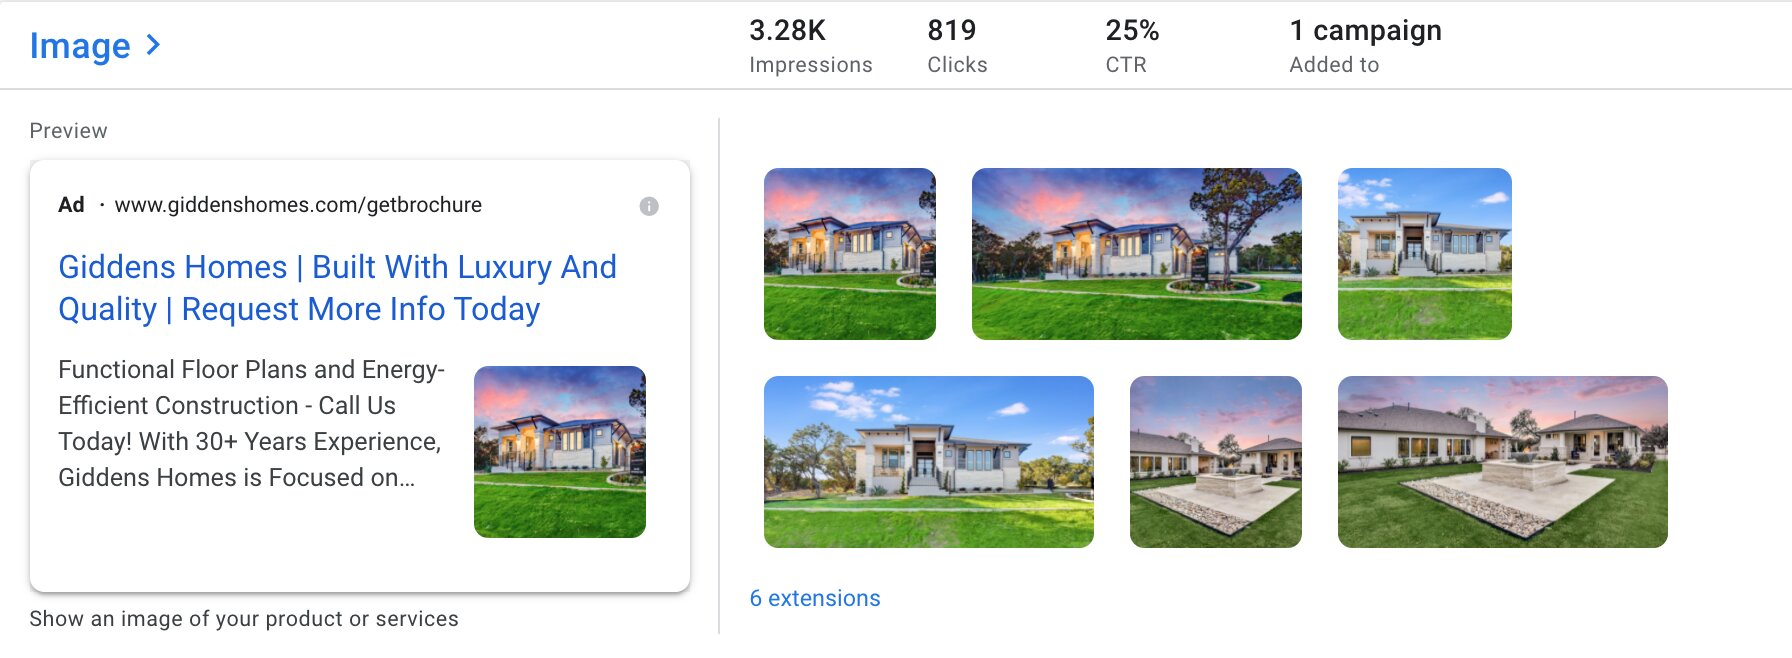 Google Ads Image Extensions for Homebuilders